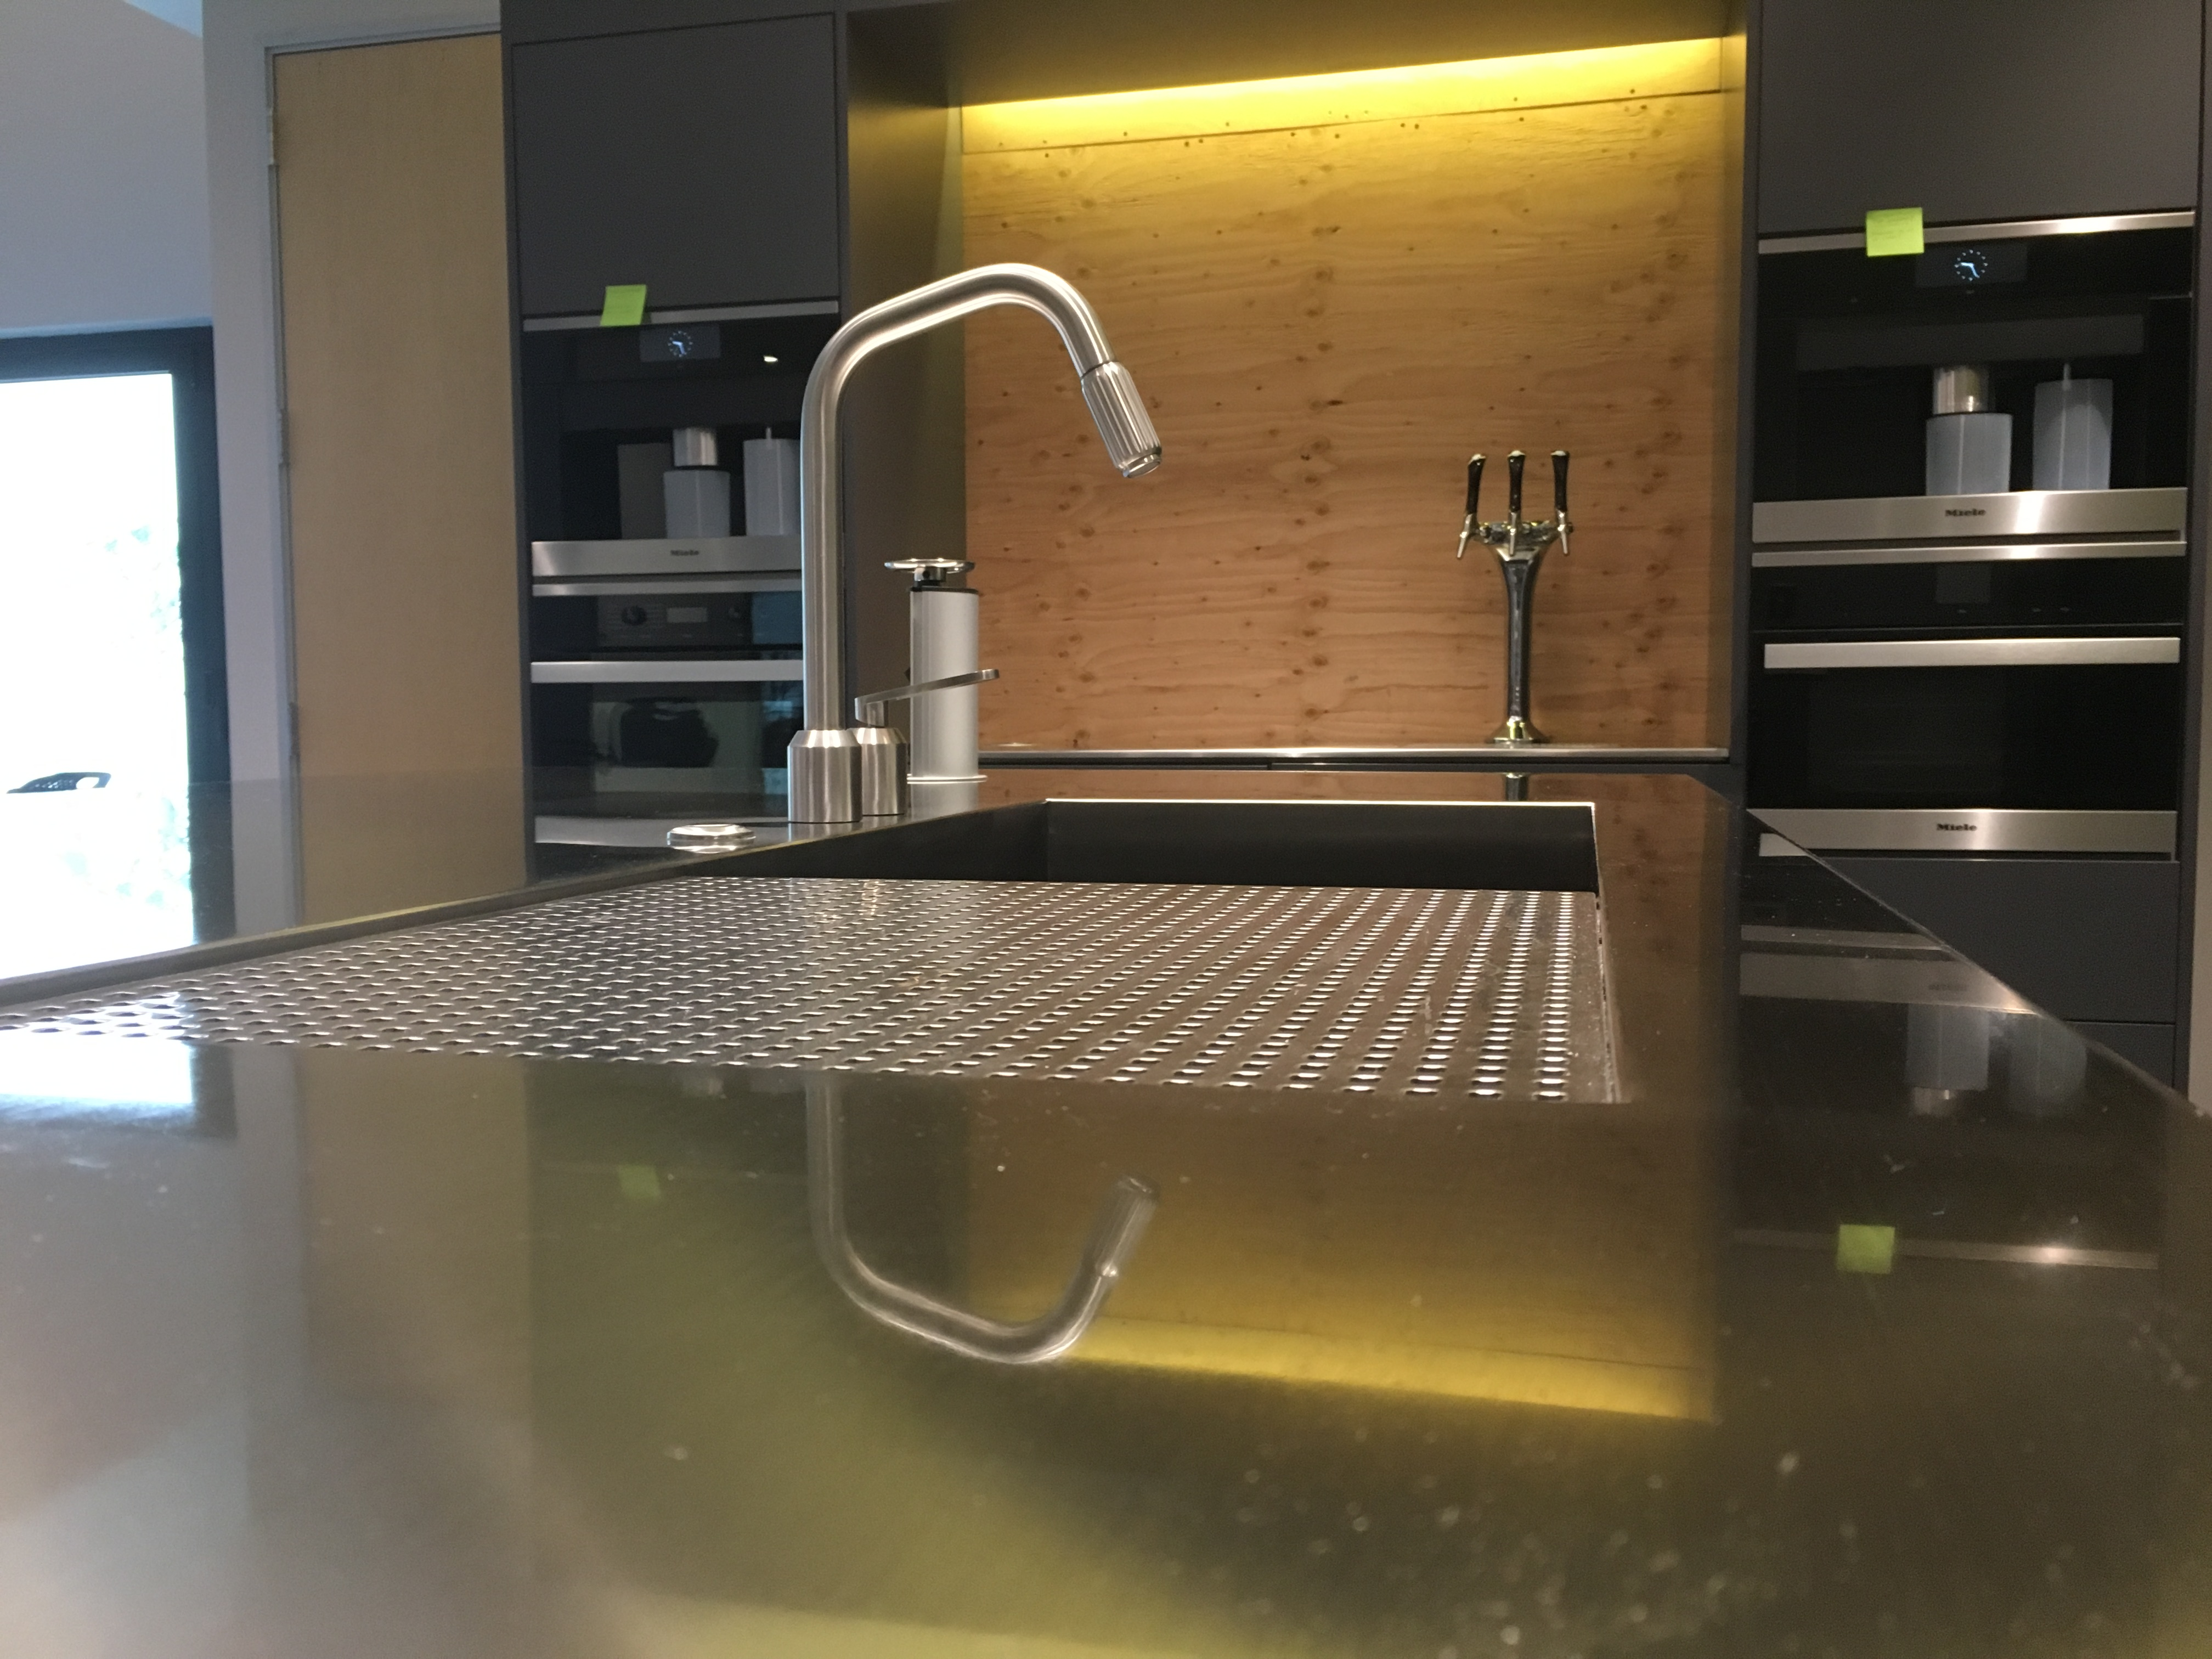 ... Neo Metro Custom Manufactured Stainless Steel Island In An Office  Kitchen (Removable Perforated Grate Over Sink) With Coffee Bar In ...